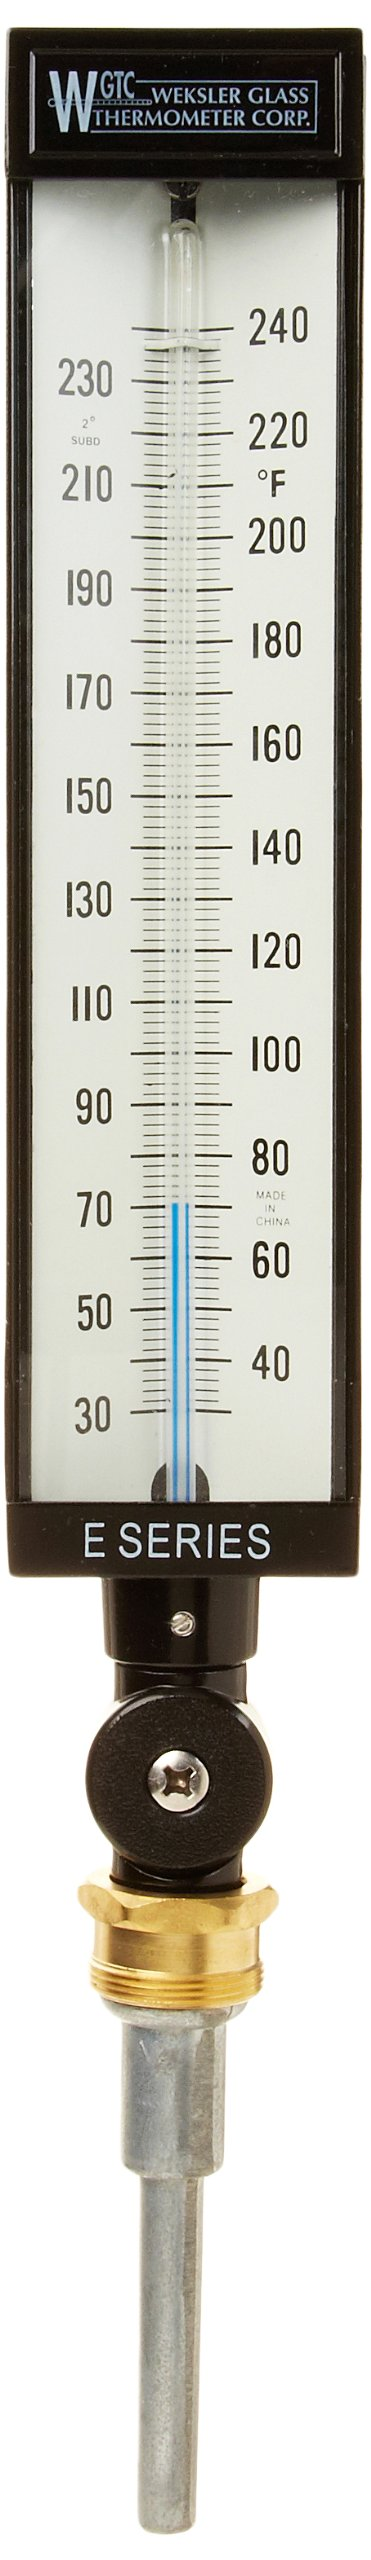 PIC Gauge AS5H9EA-K 9'' Scale, 3-1/2'' Stem Length, 30/240° F Temperature Range Eco-Red Spirit Filled Industrial Thermometer with Aluminum Case, and Adjustable Angle